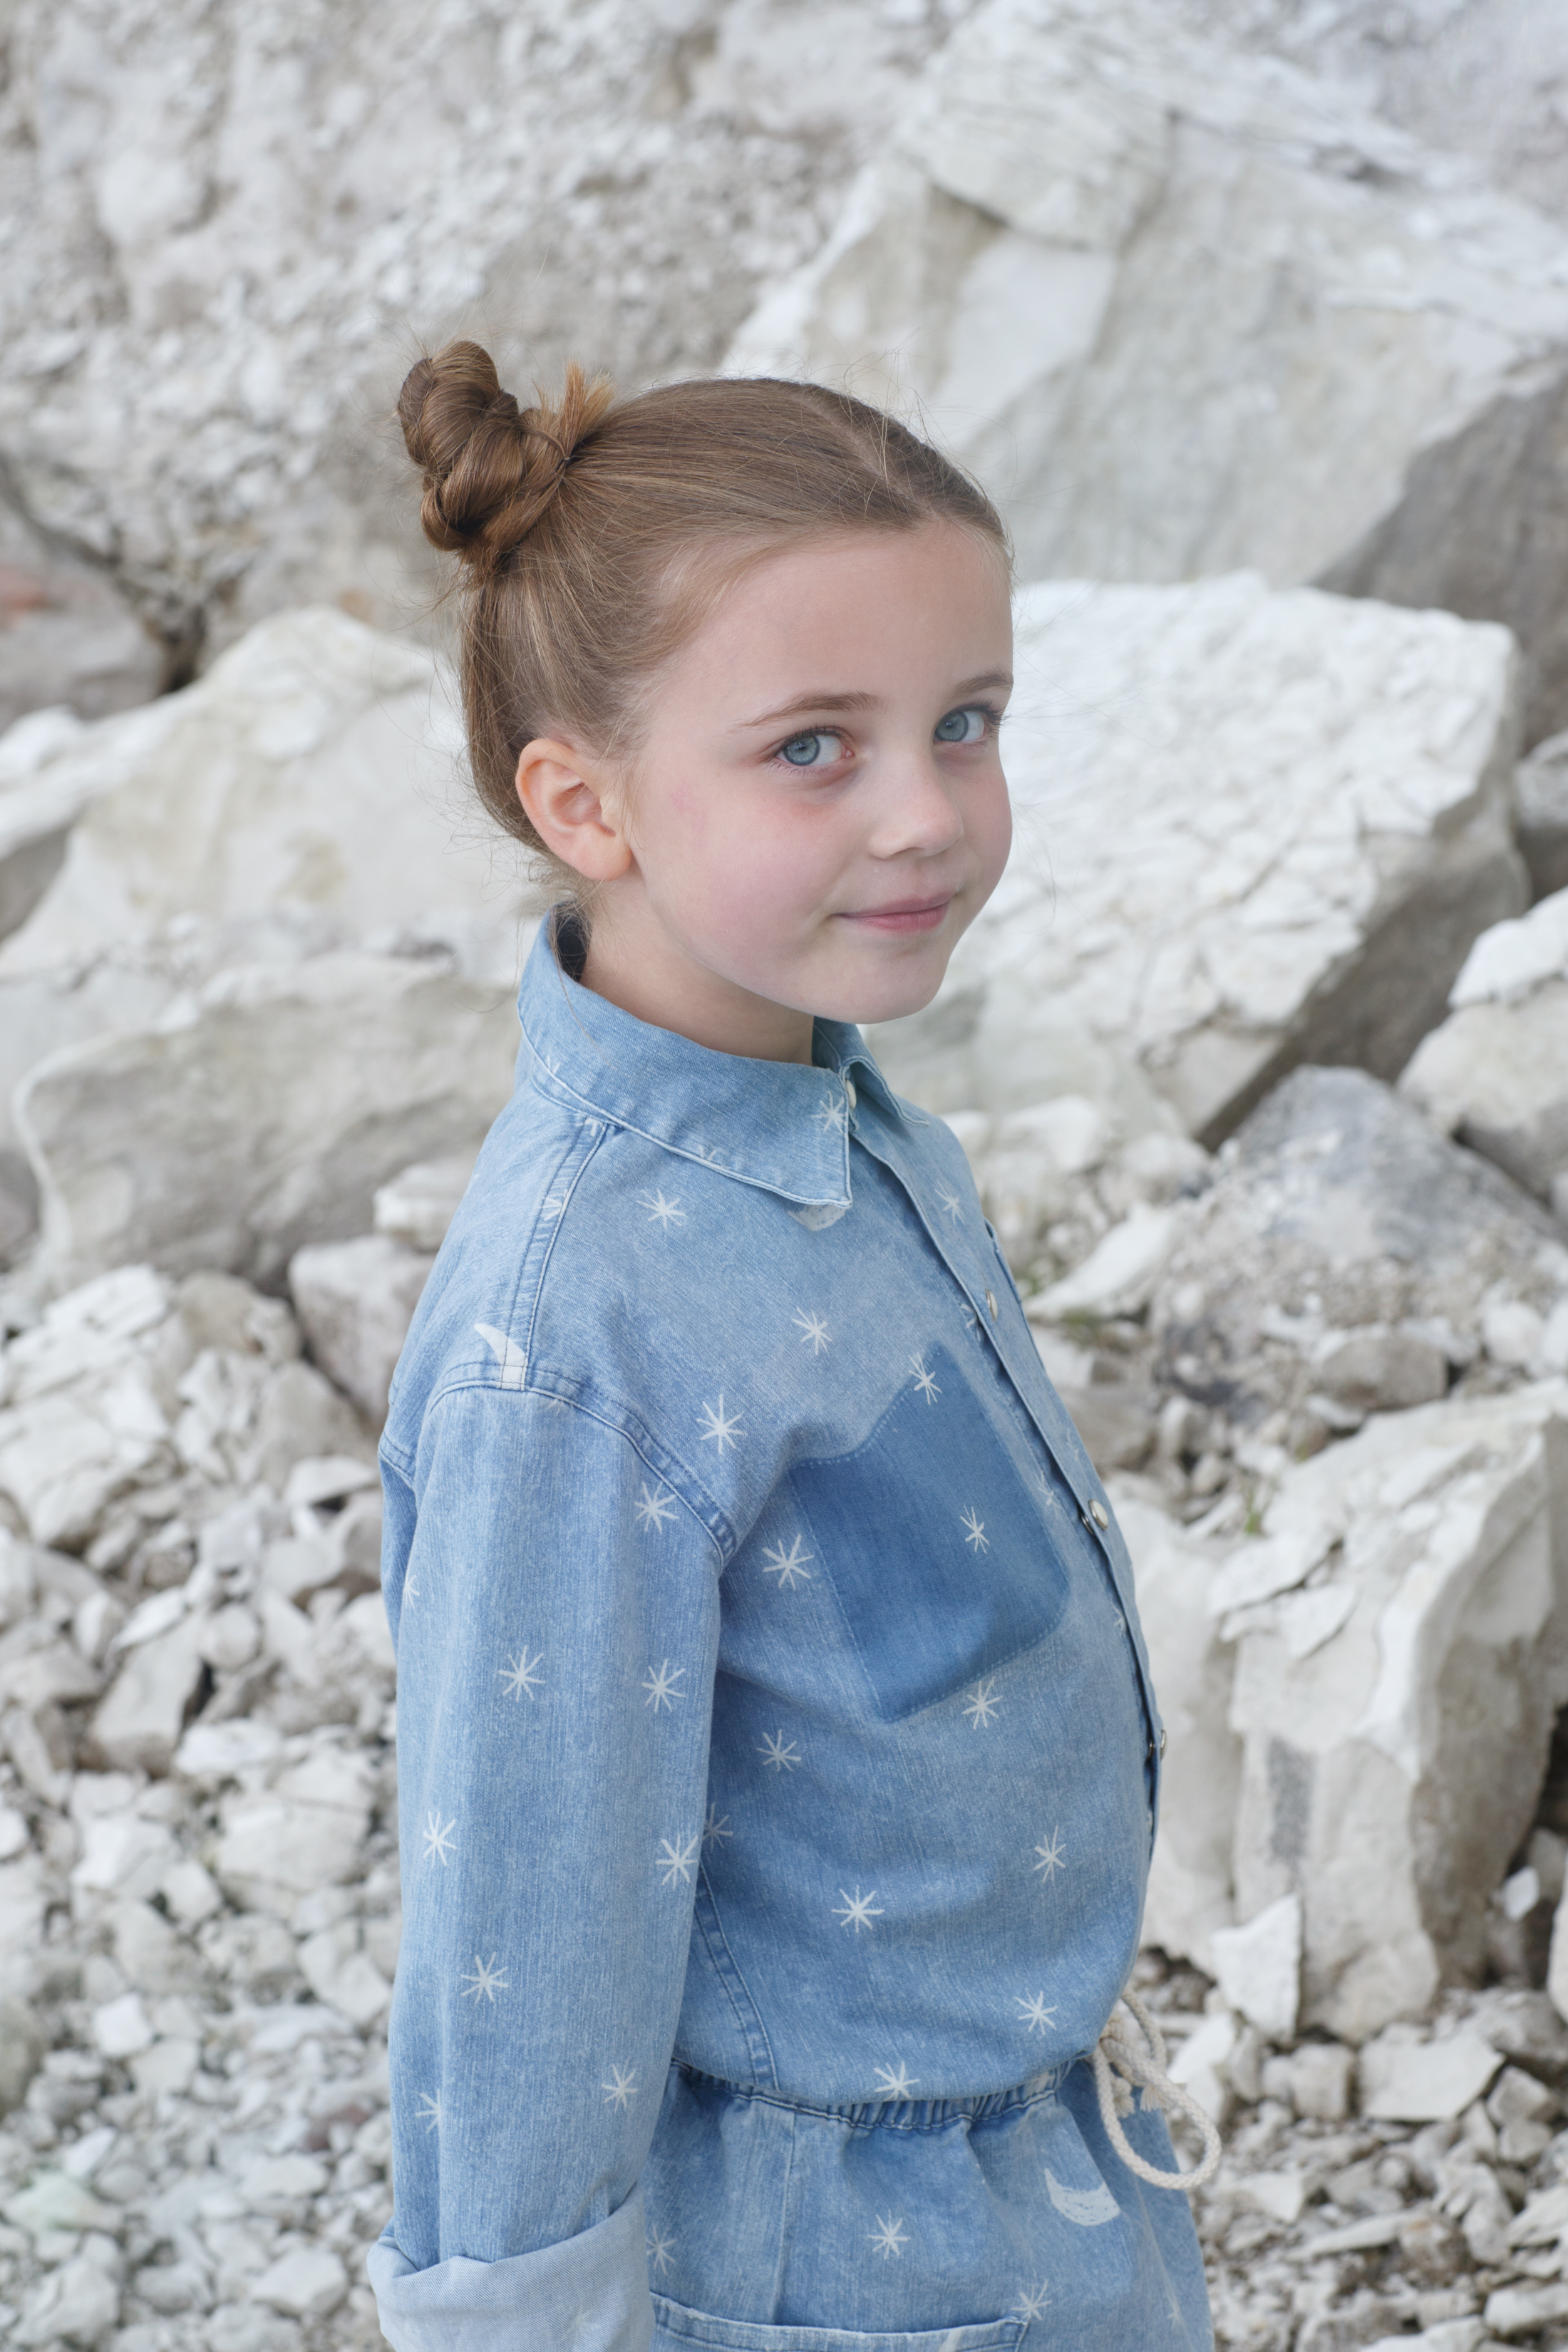 Moon and stars denim shirt & skirt, Bobo Choses. Star socks, Molo. Silver trainers, Plae.